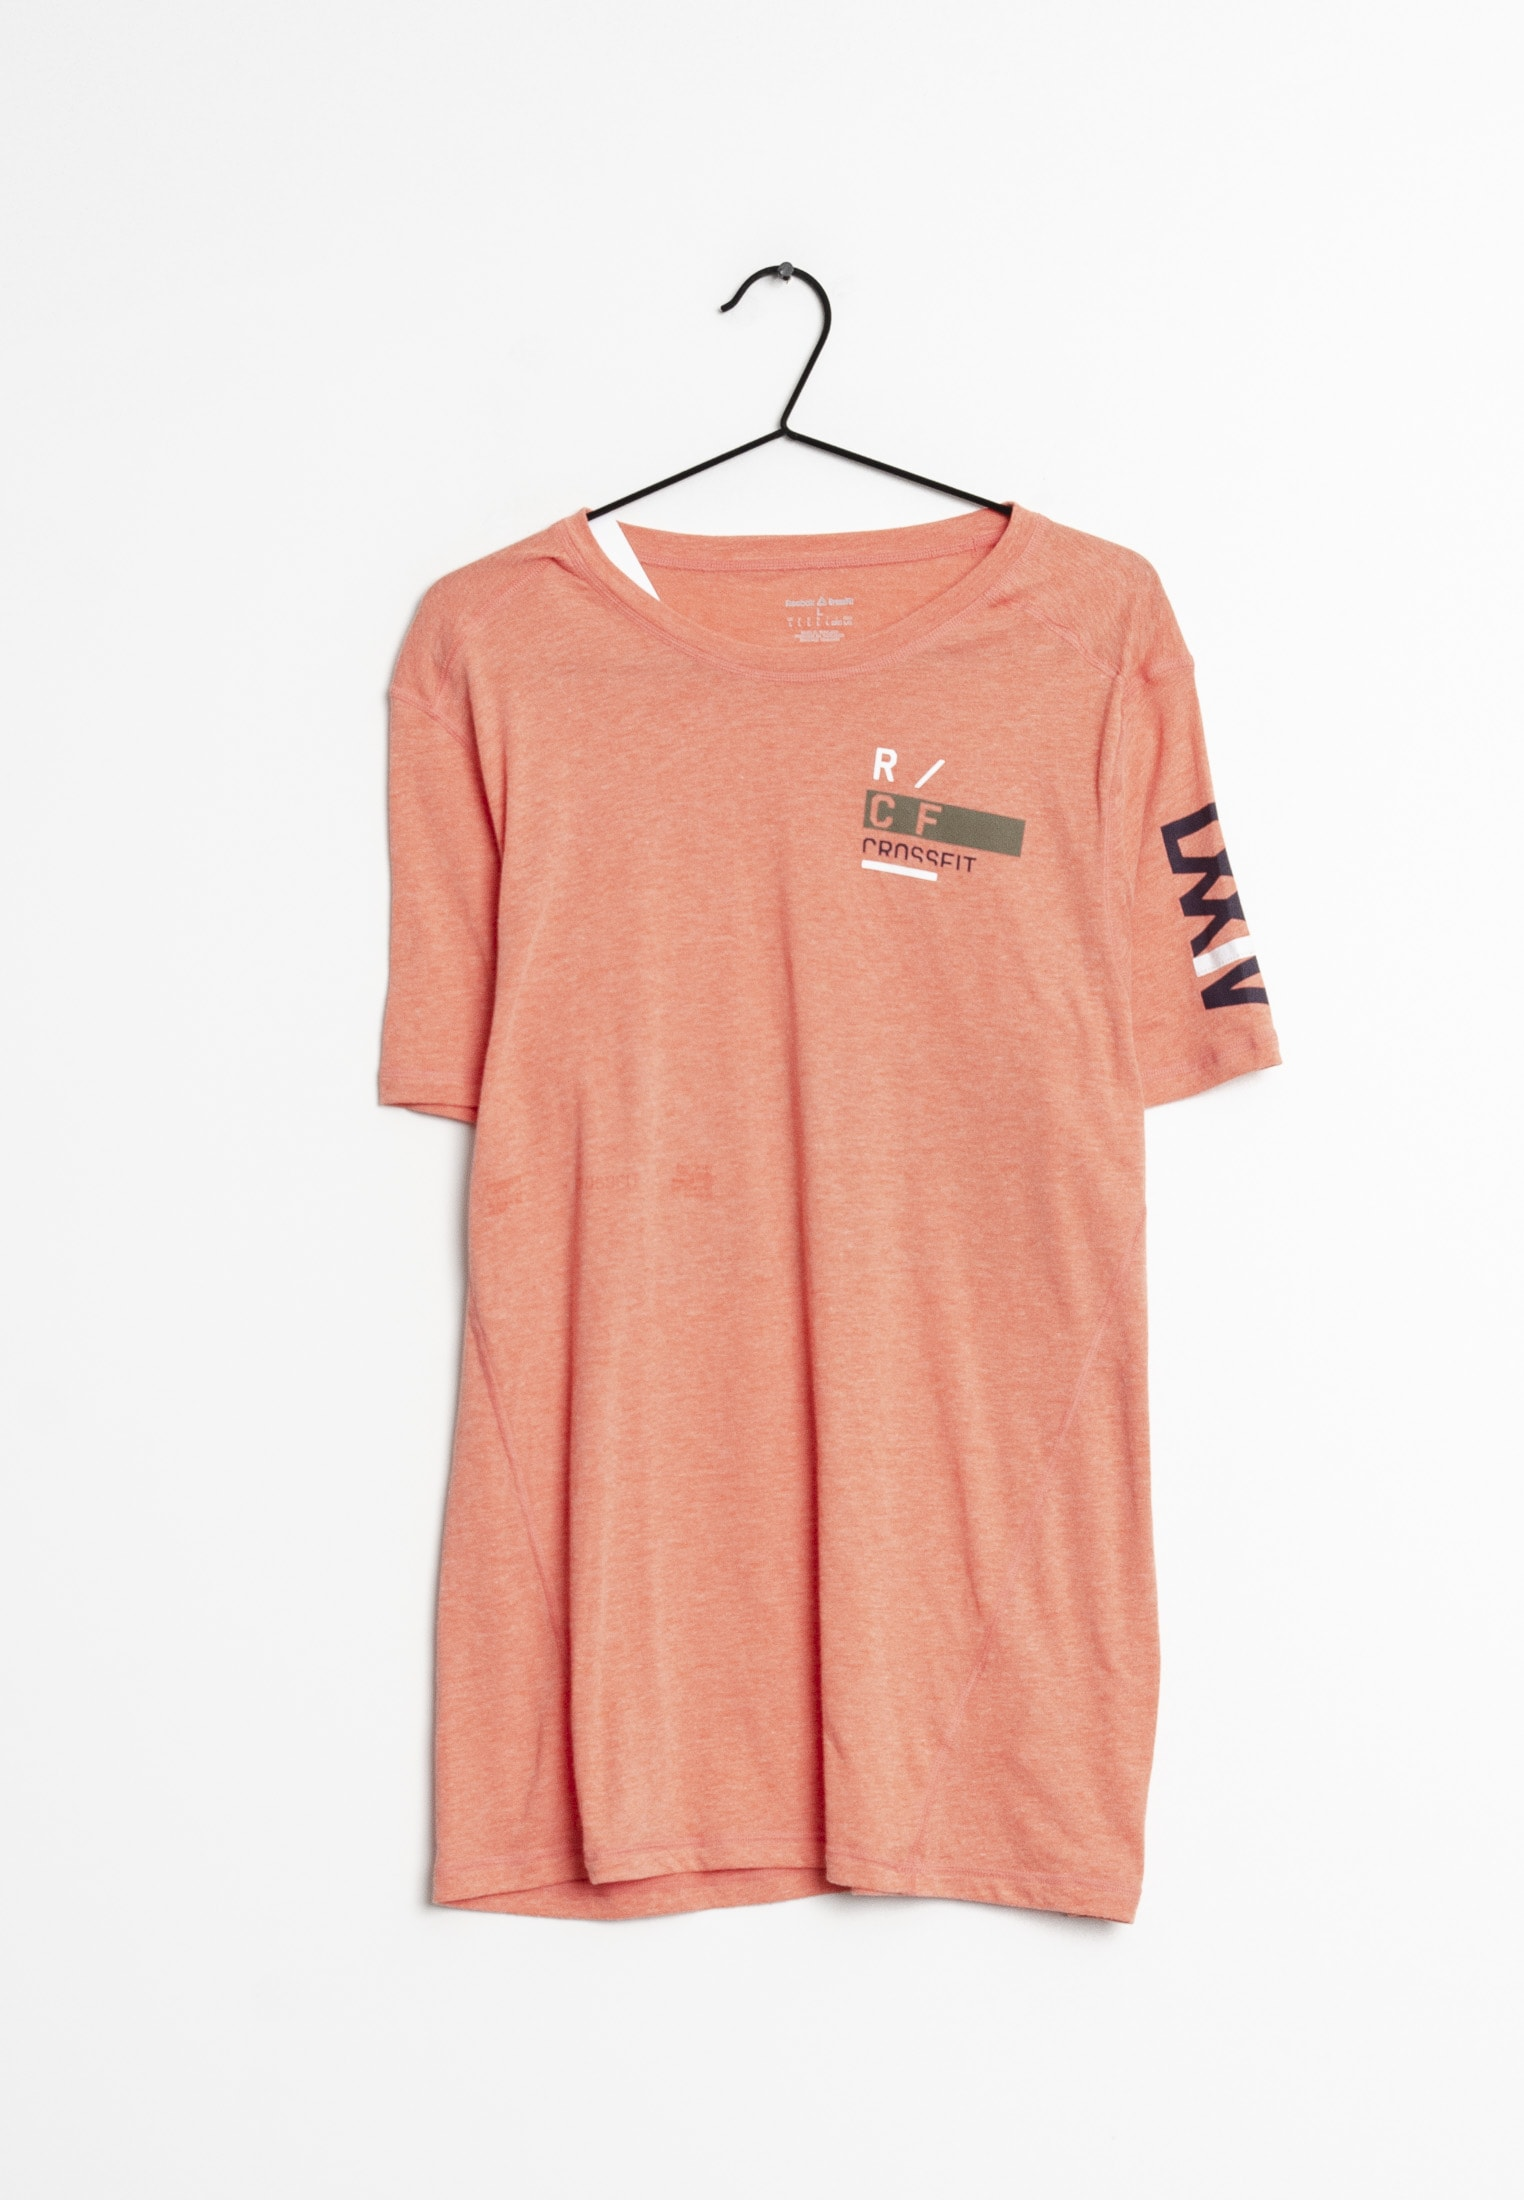 Reebok T-Shirt orange Gr.L